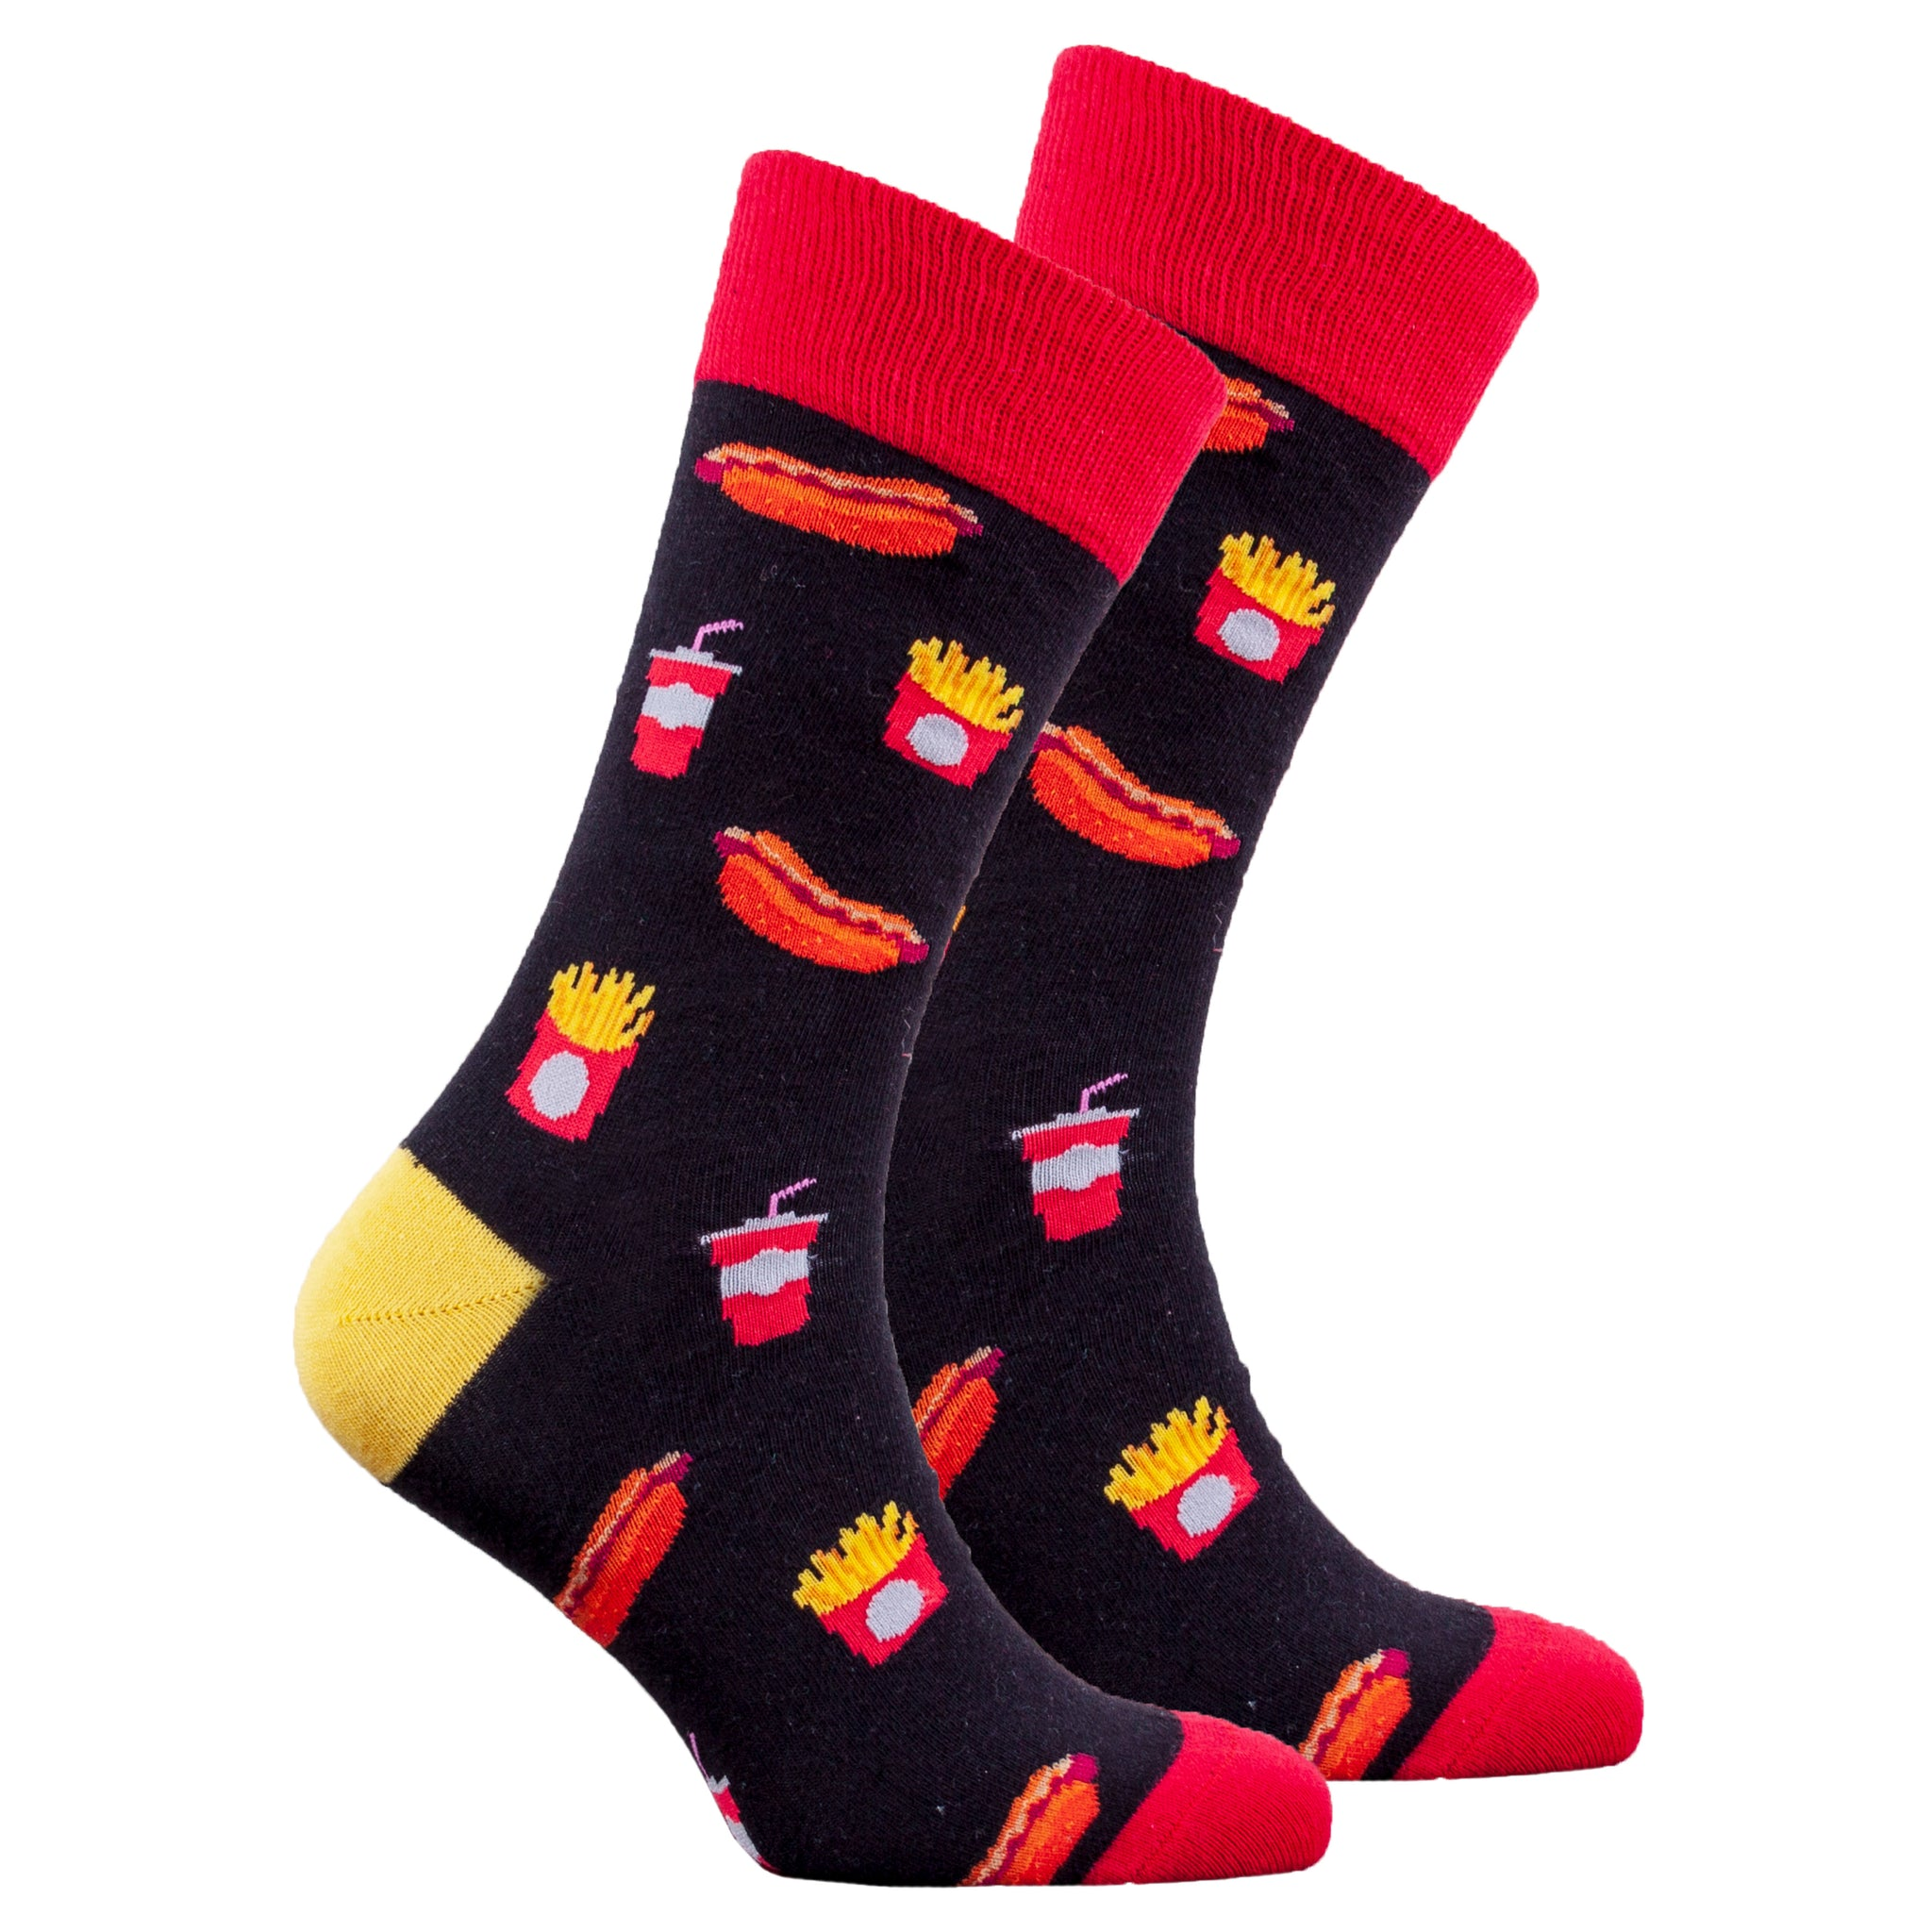 Men's Hotdogs Socks